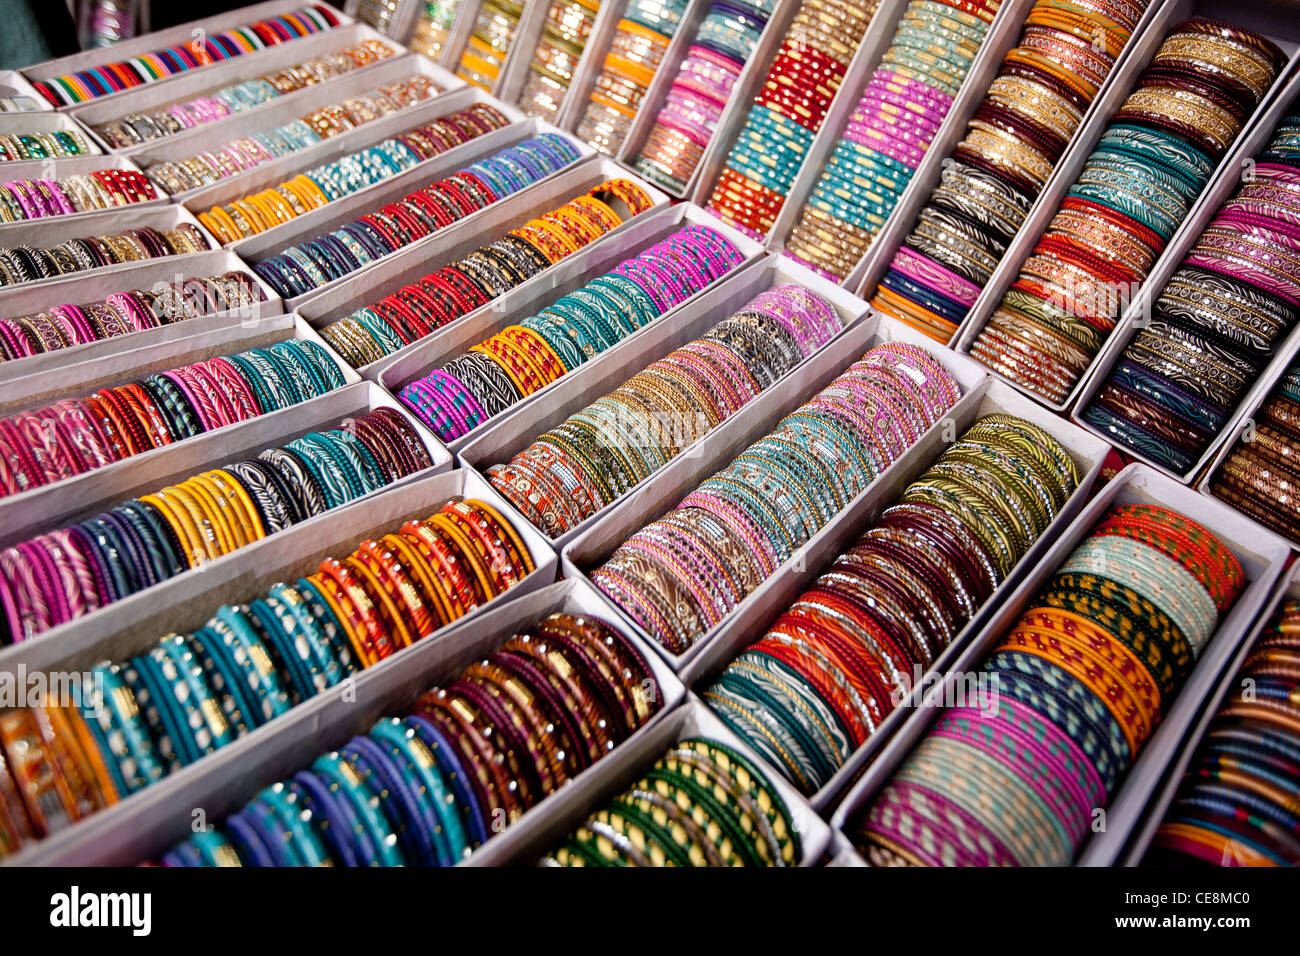 stock in tamilnadu madurai alamy bthctk bangle shop bangles photo